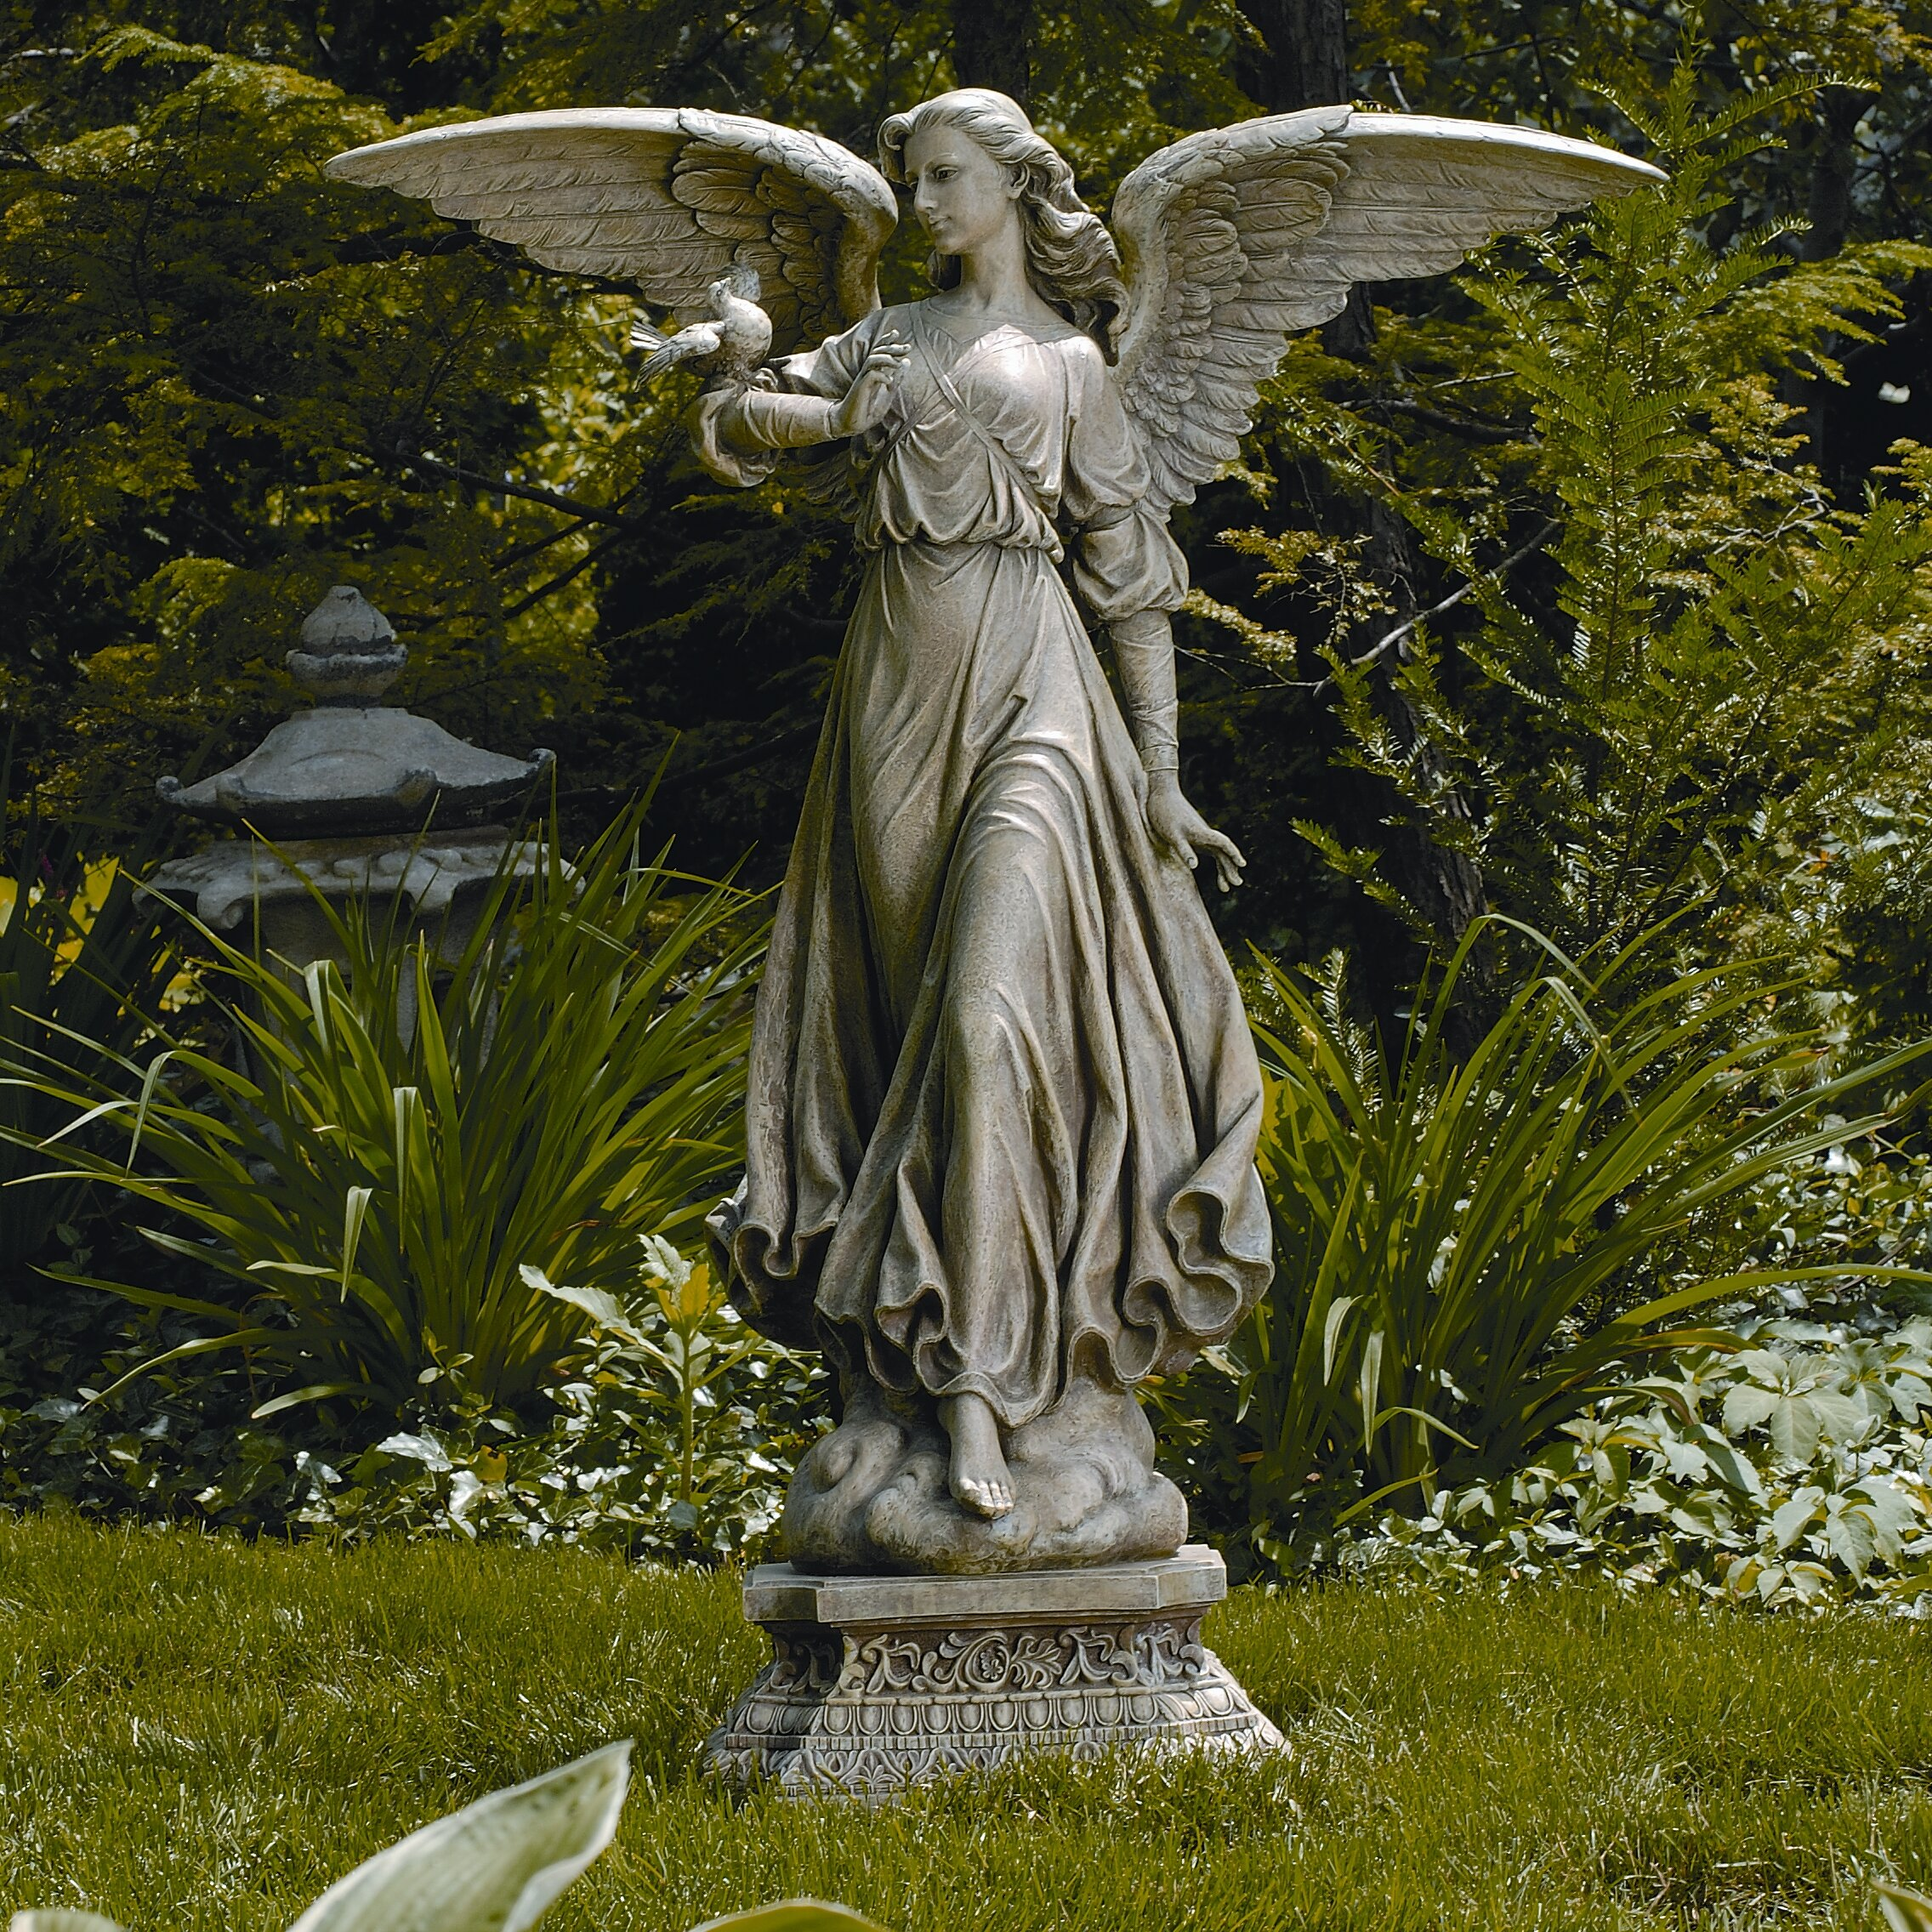 Roman, Inc. Classic Angel Garden Statue U0026 Reviews | Wayfair